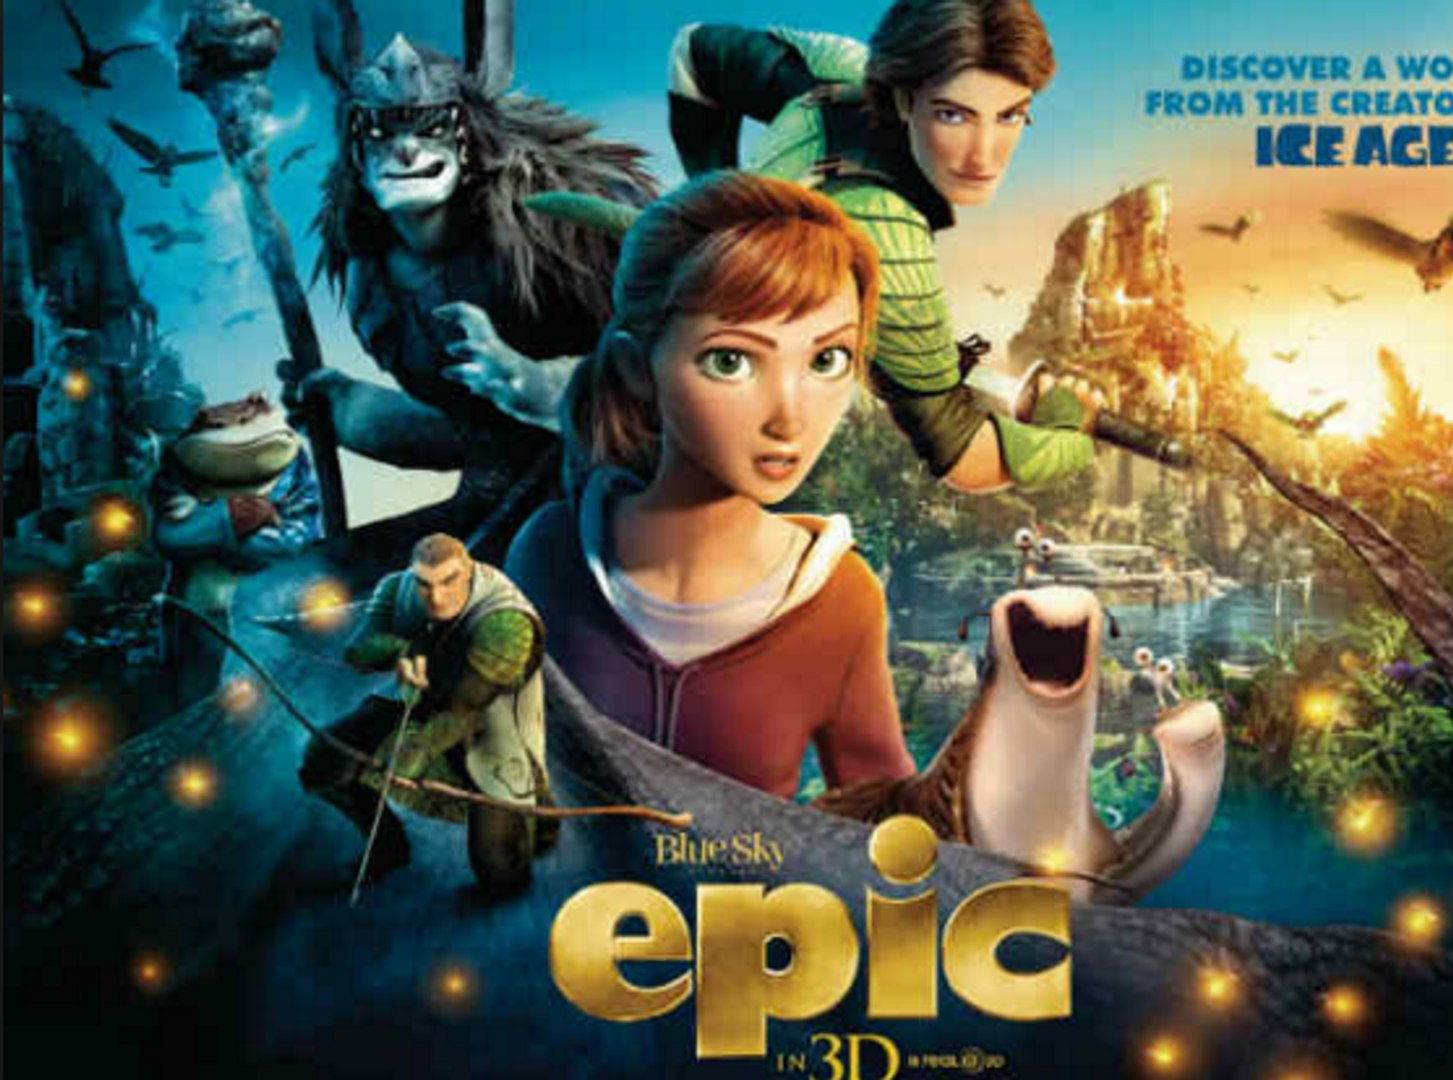 Animation Movies 2015 Full Movies English - Movies For Children